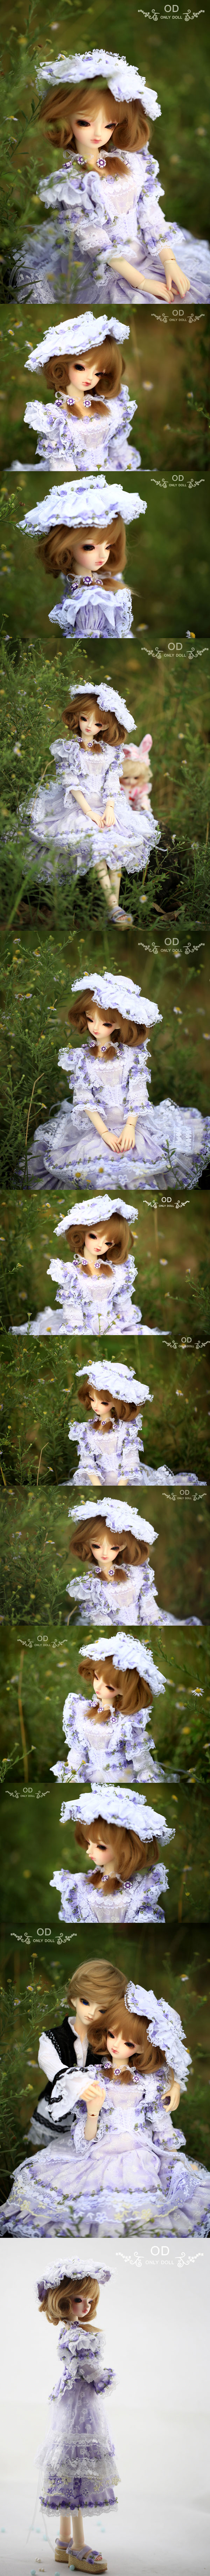 BJD Lucy Girl 43cm Boll-jointed doll